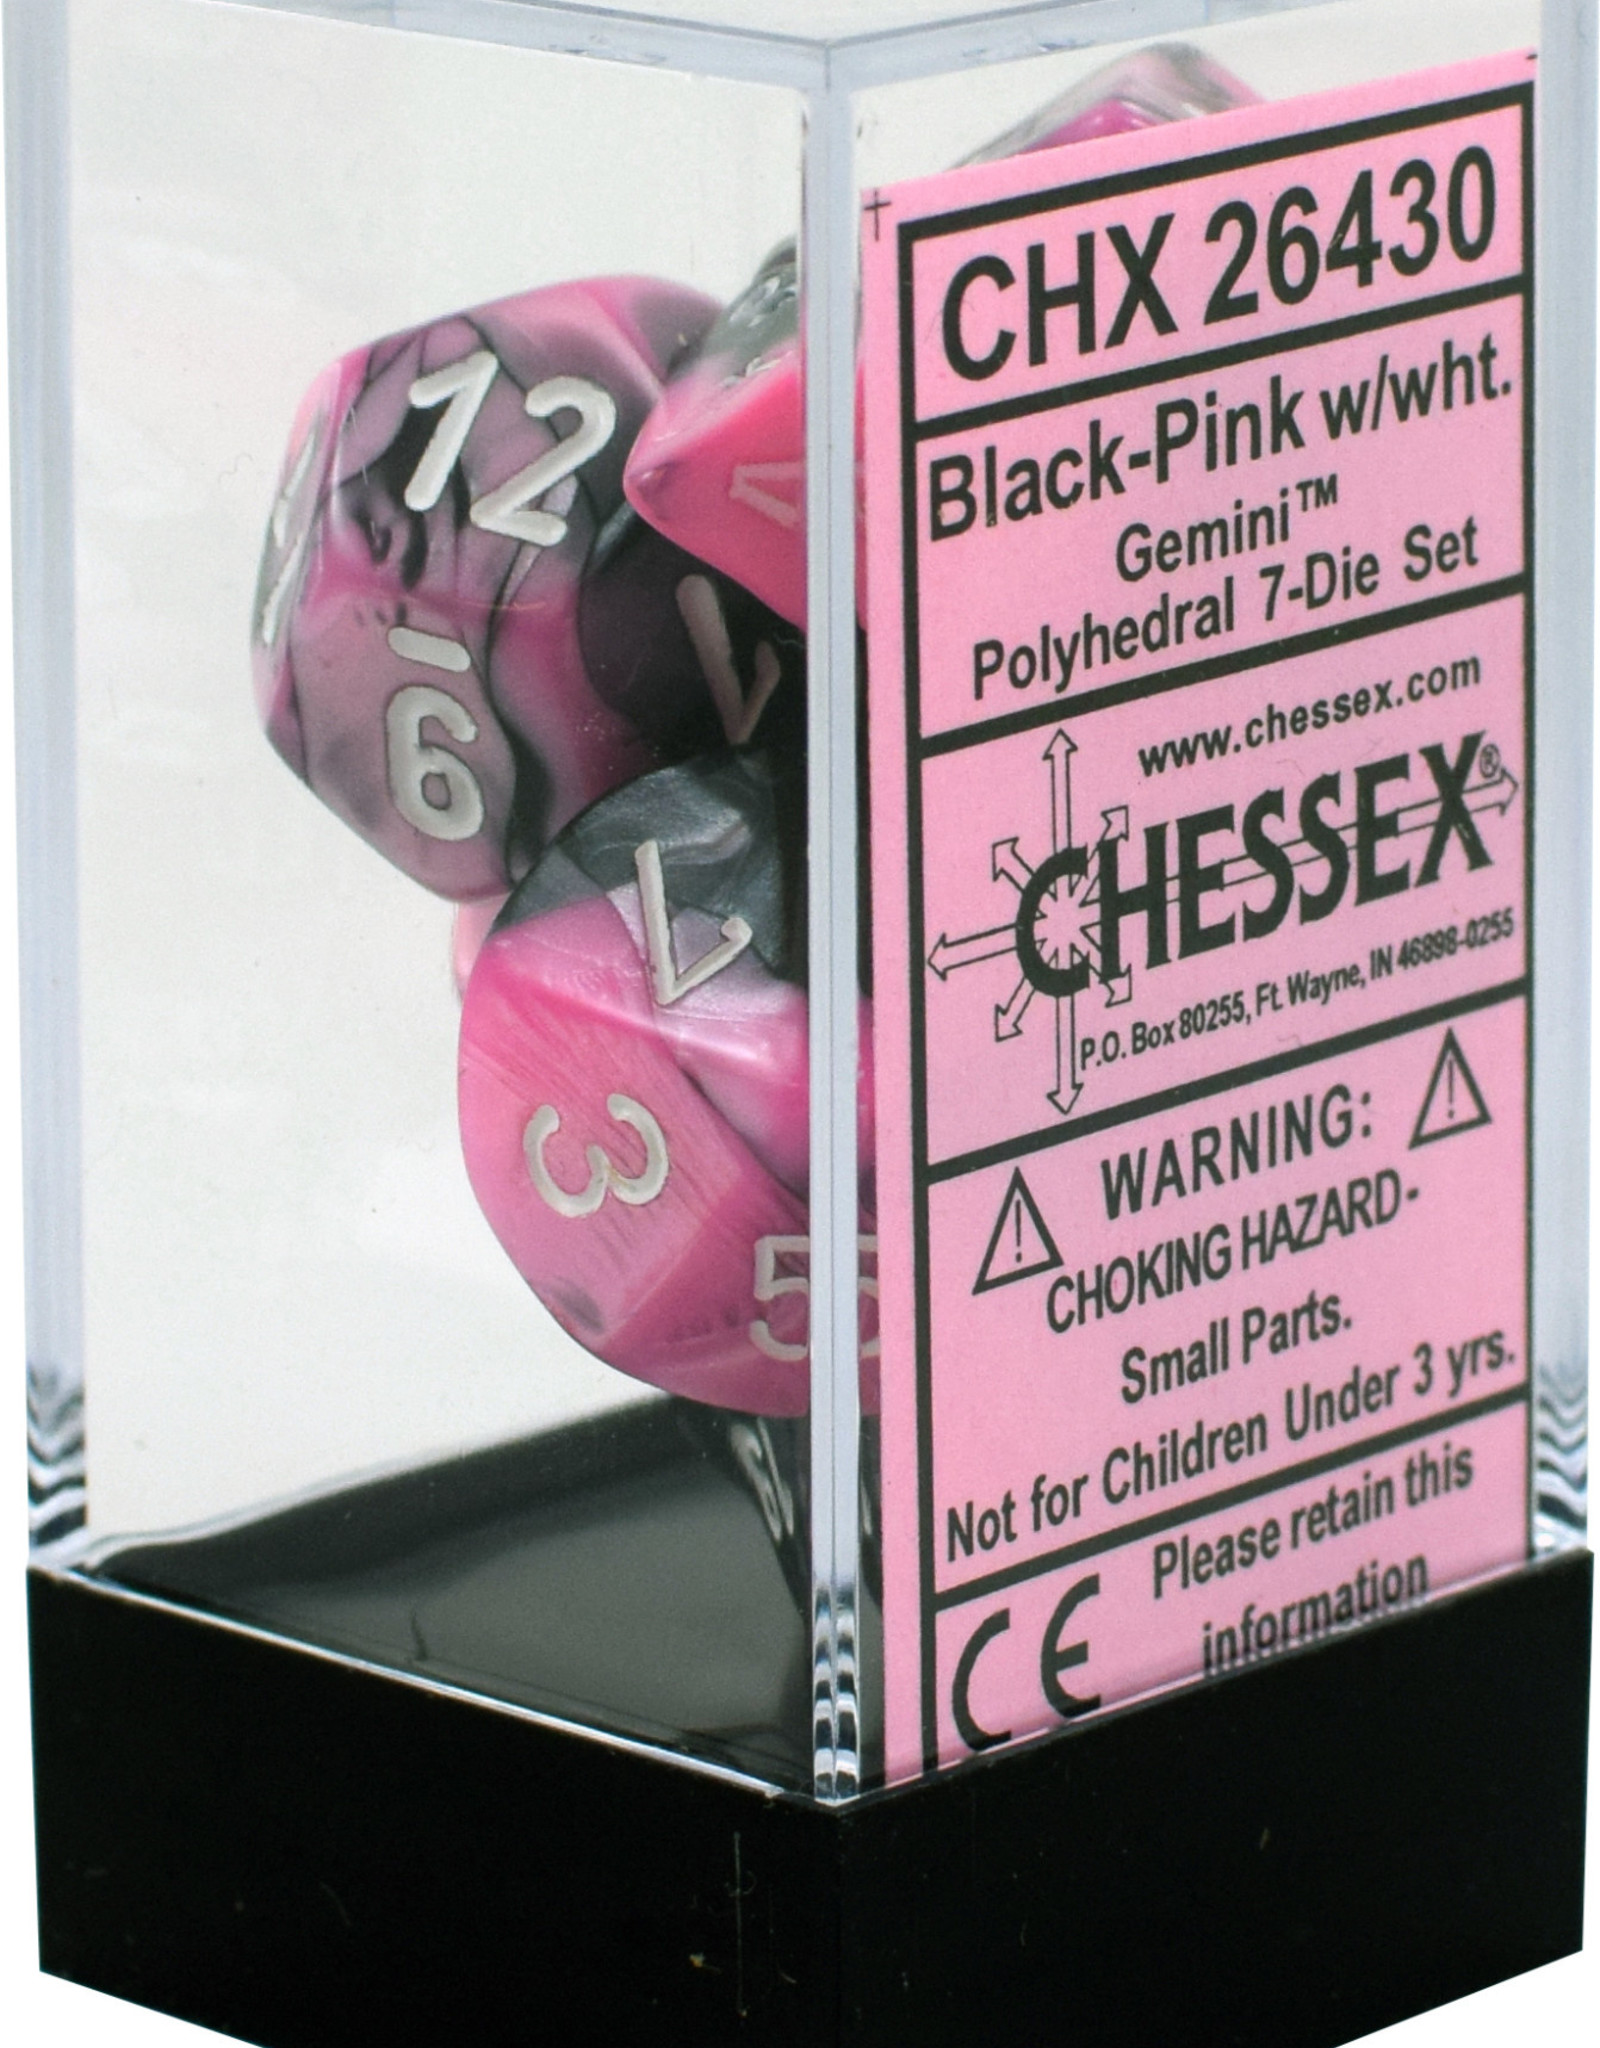 Chessex Gemini Black-Pink w/white Polyhedral Set